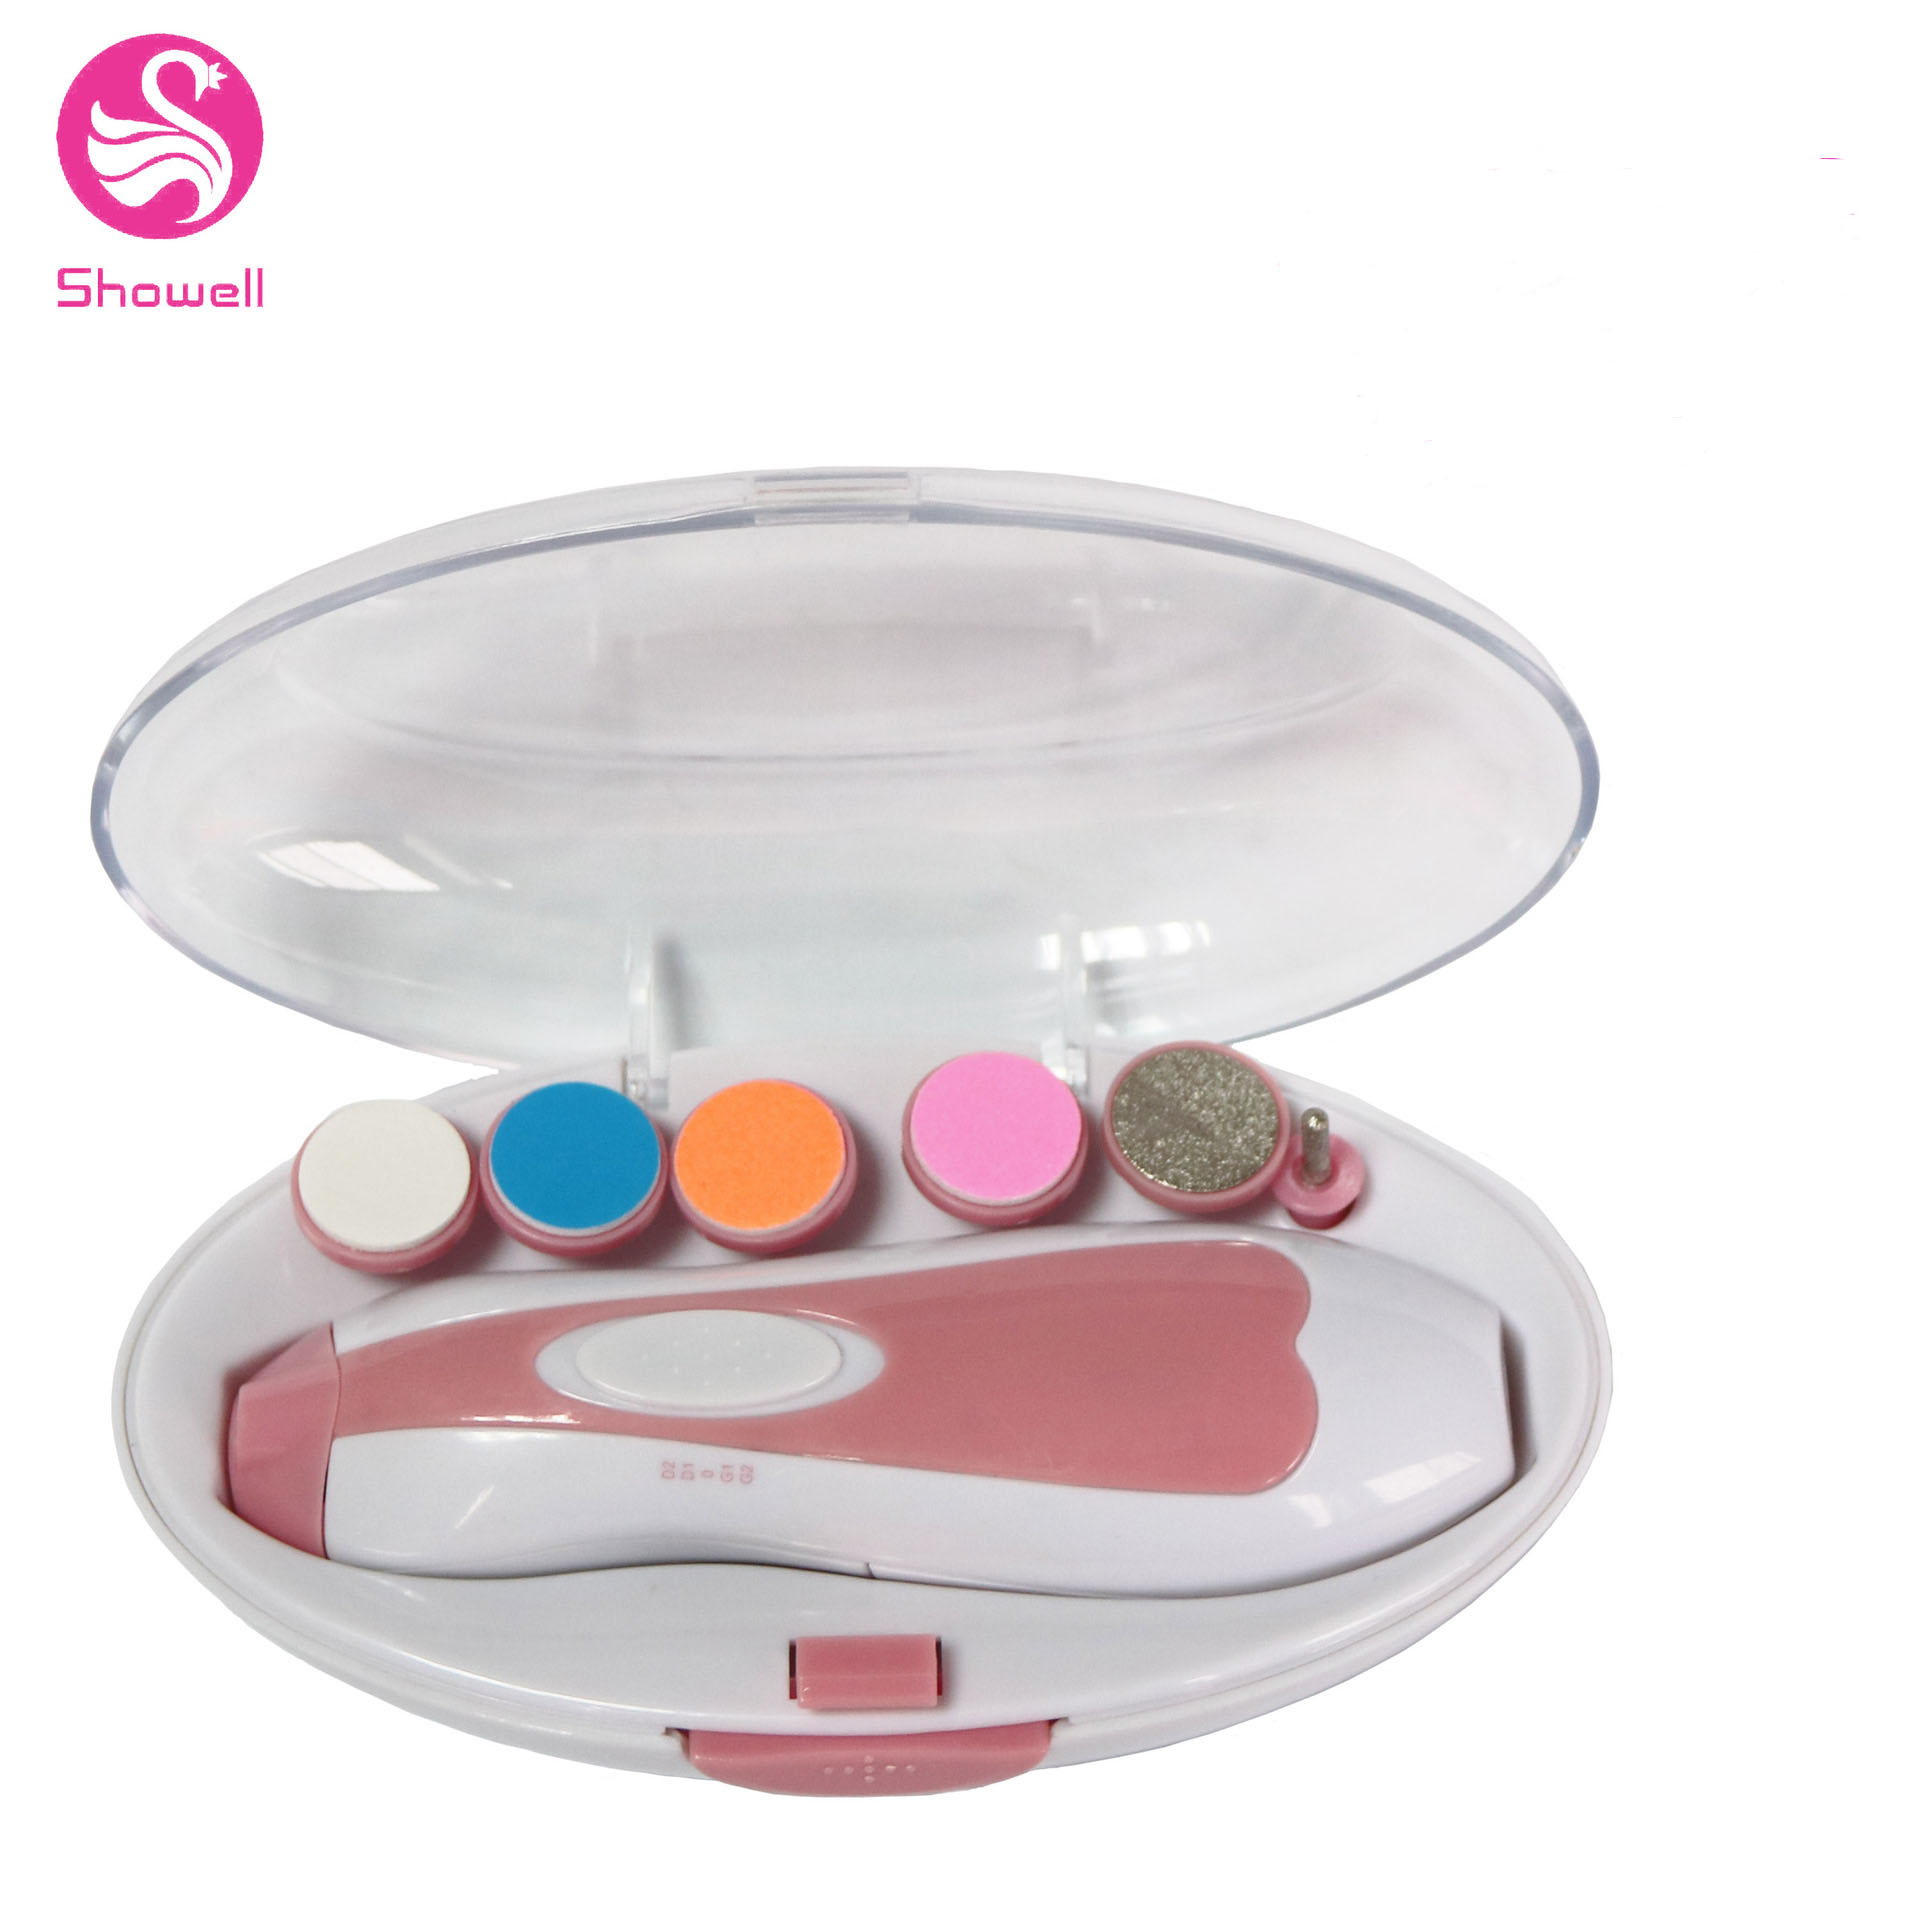 2020 Good Quality Professional Portable OEM Electric Baby Nail Trimmer with LED Light